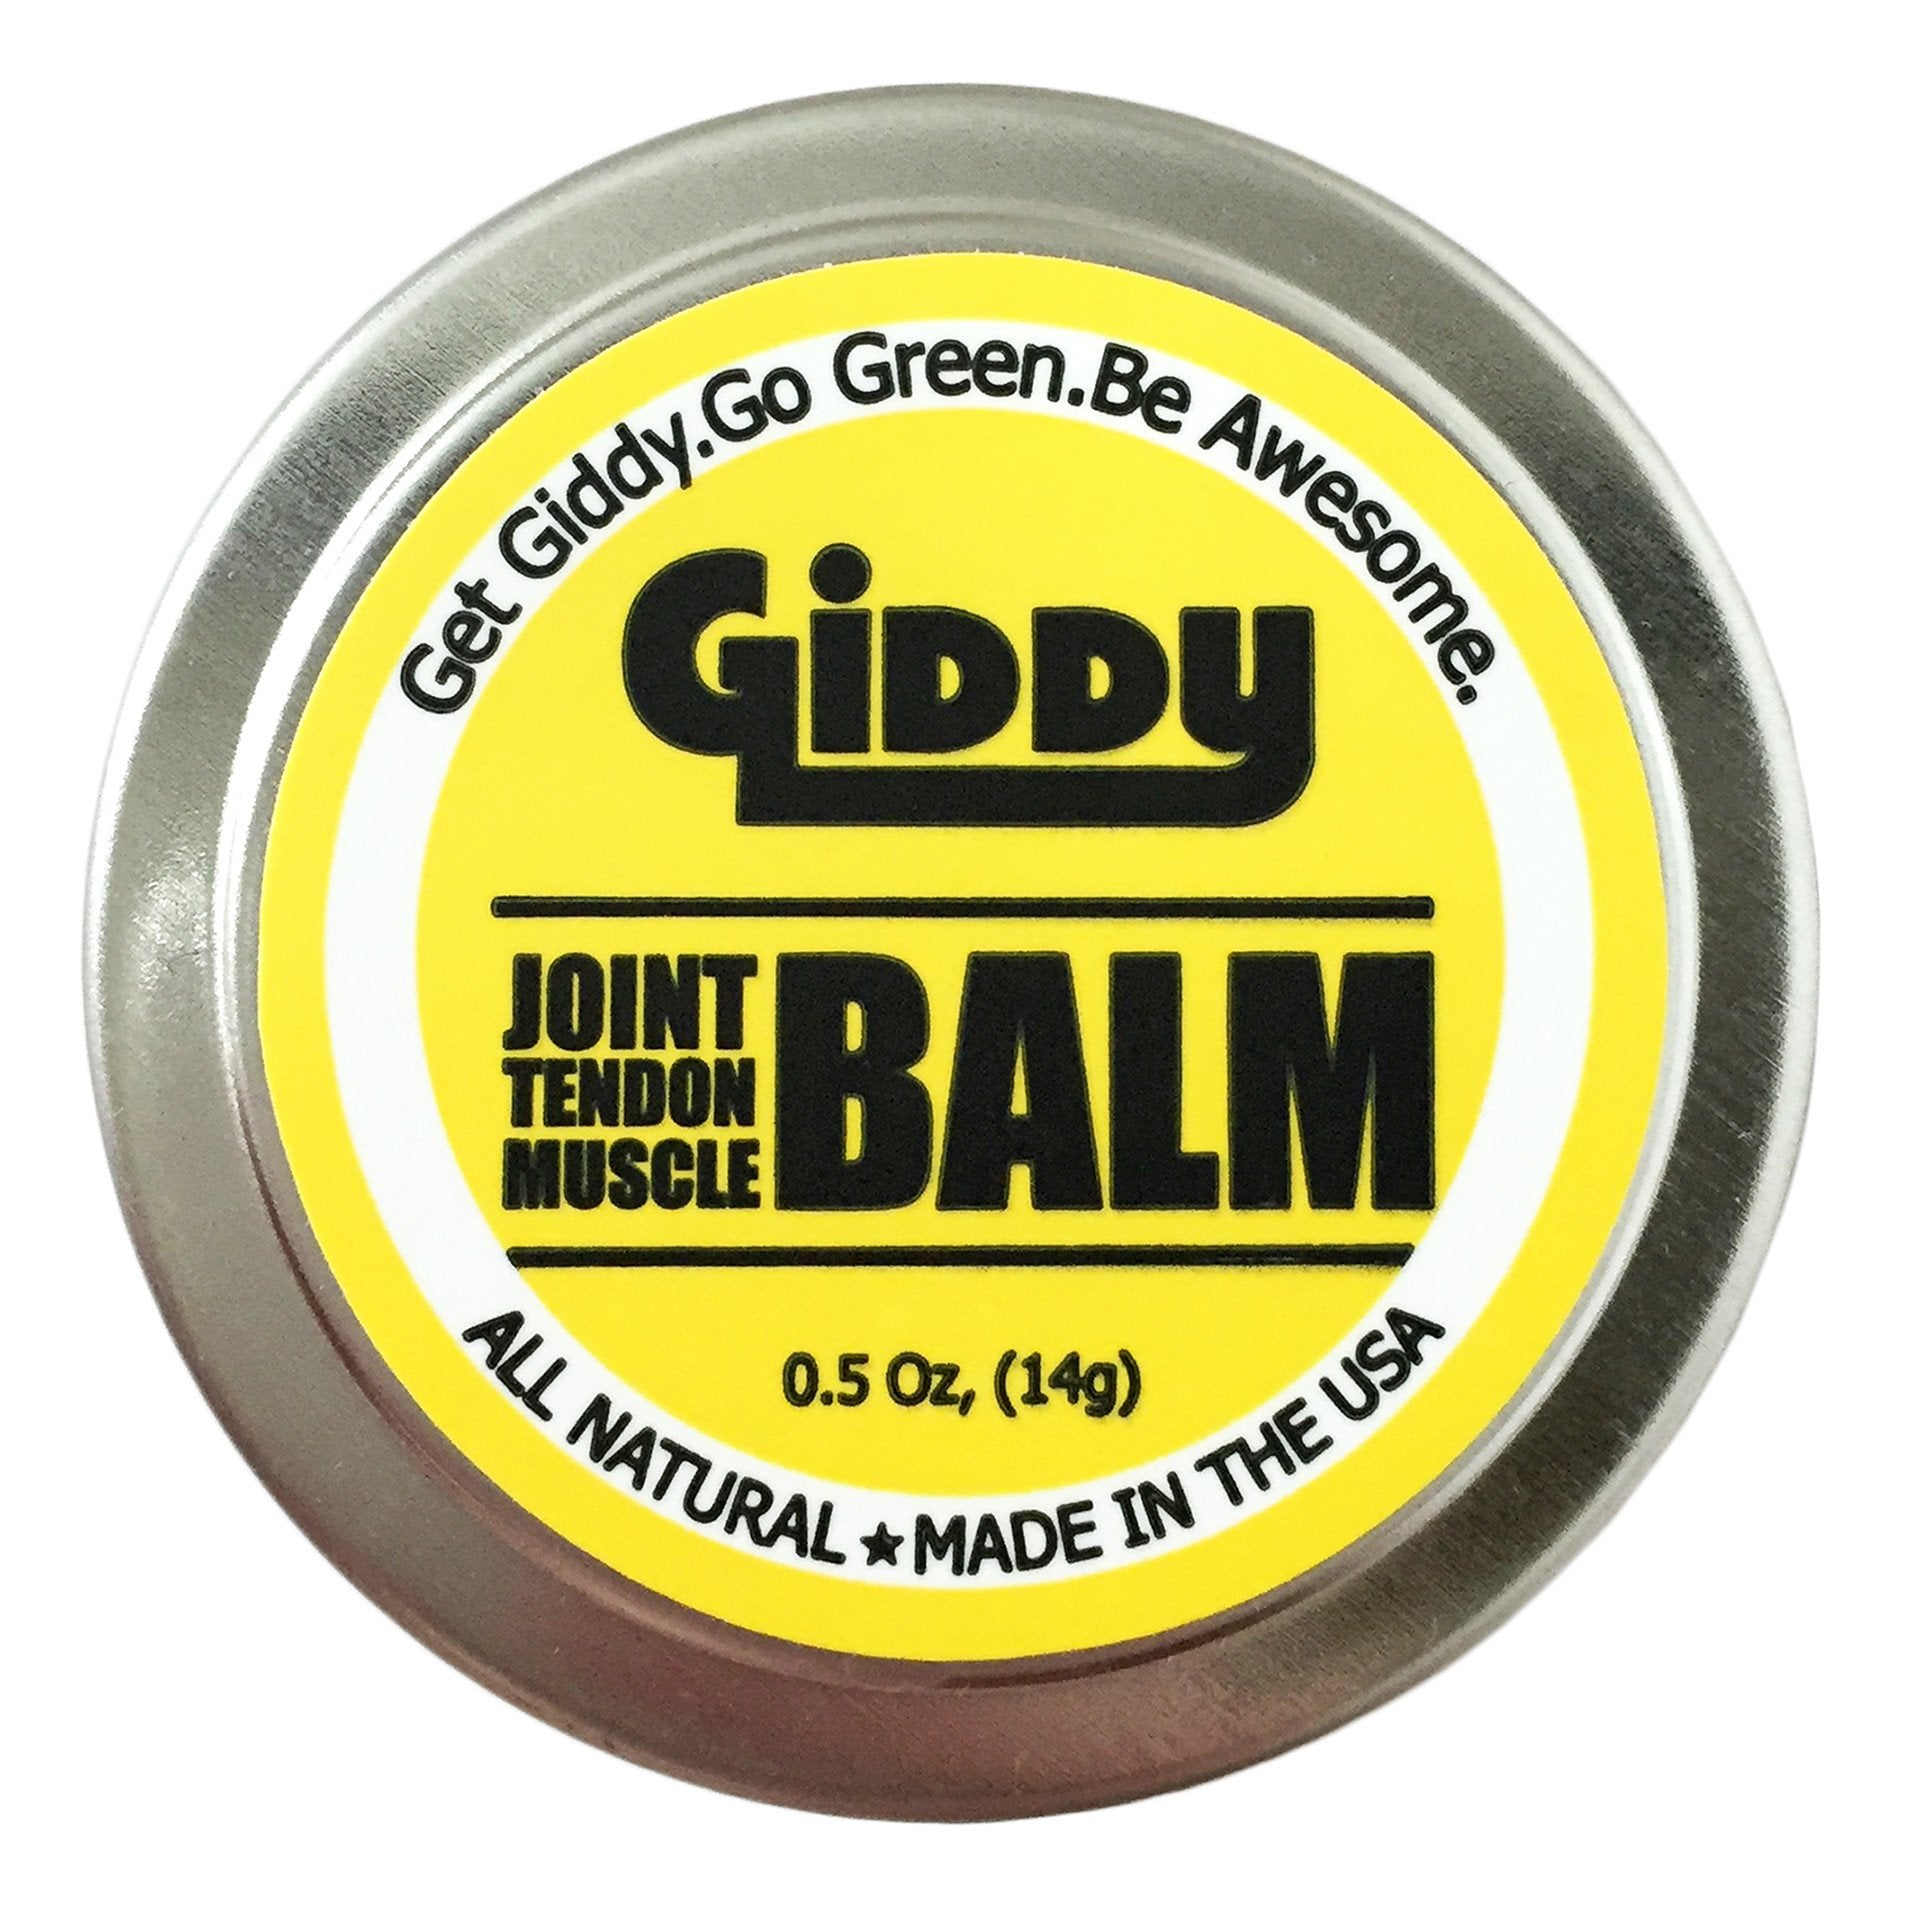 GIDDY Joint & Tendon Balm